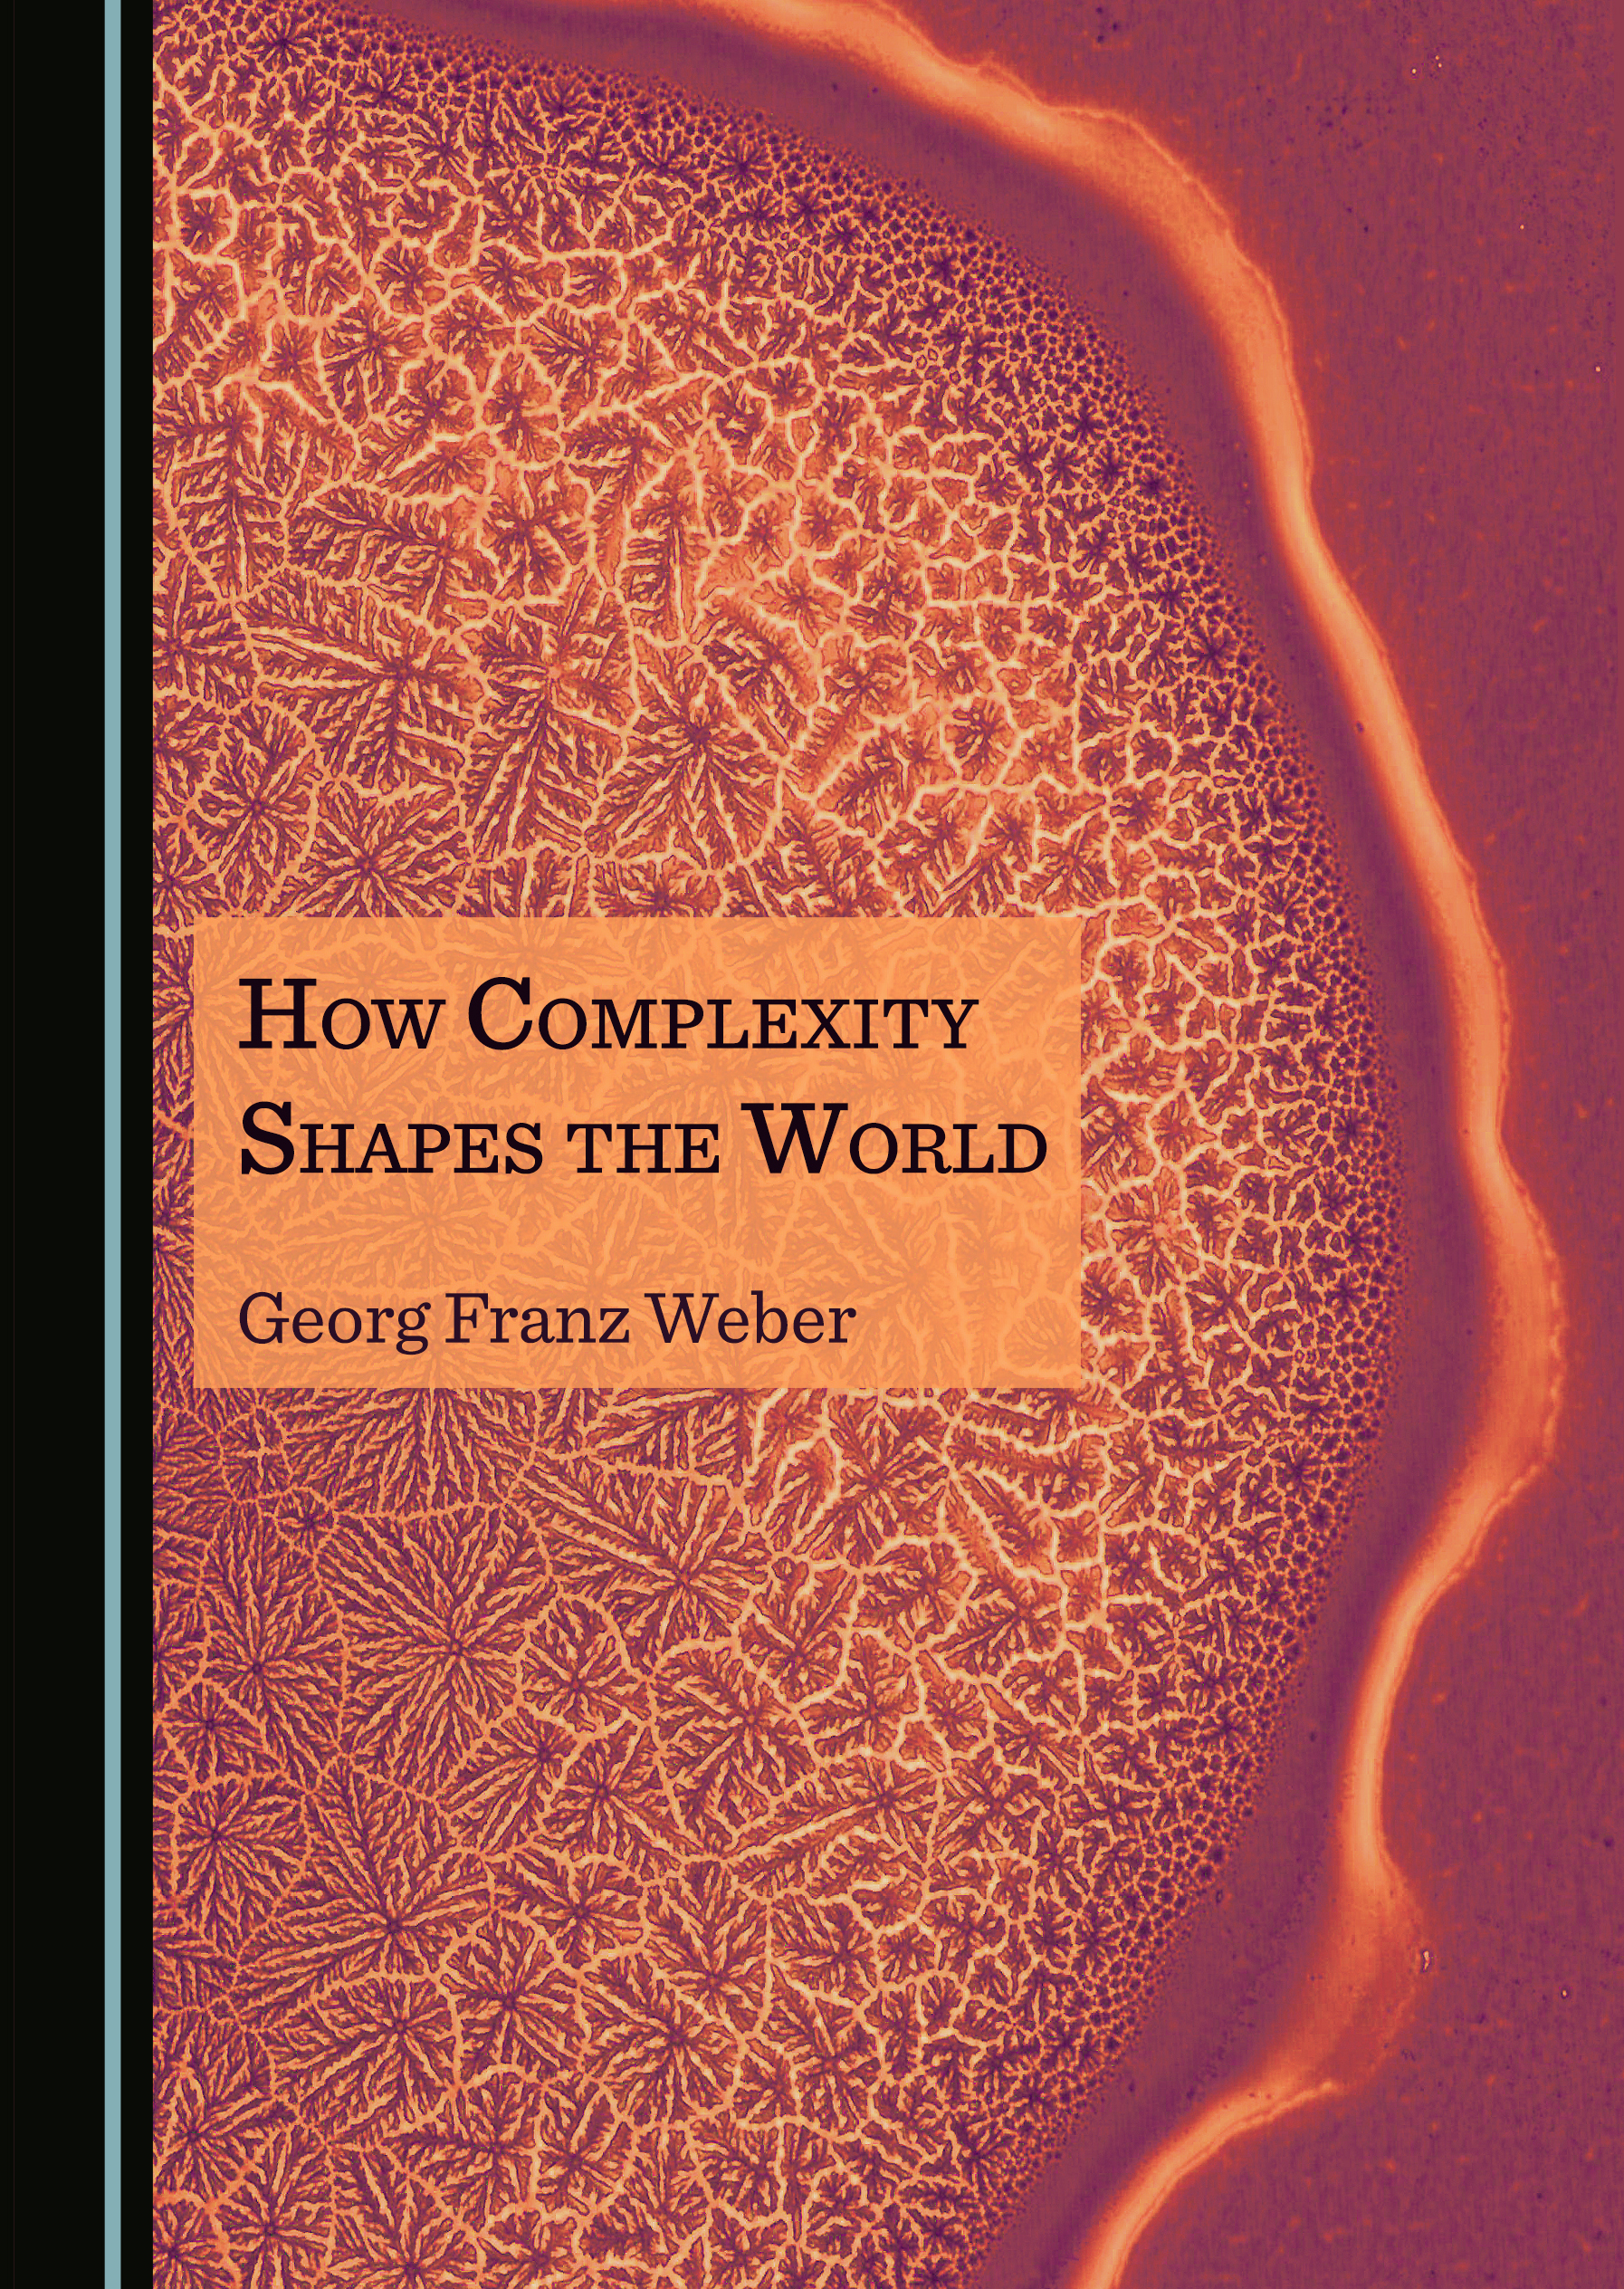 How Complexity Shapes the World